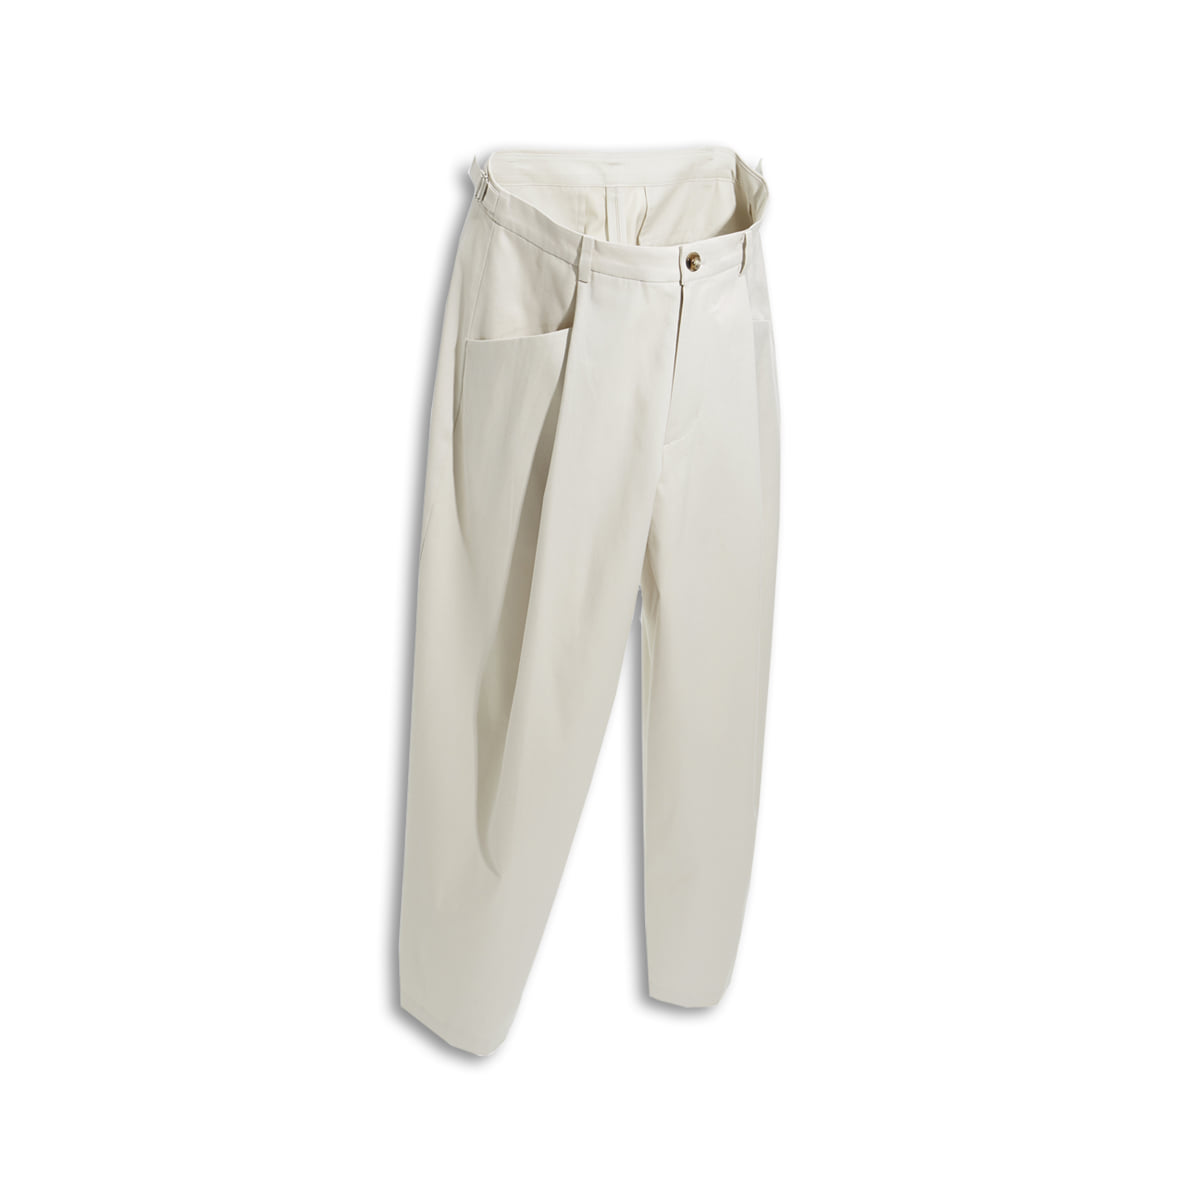 [YOUTH] STRUCTURED WIDE PANTS 'STONE'